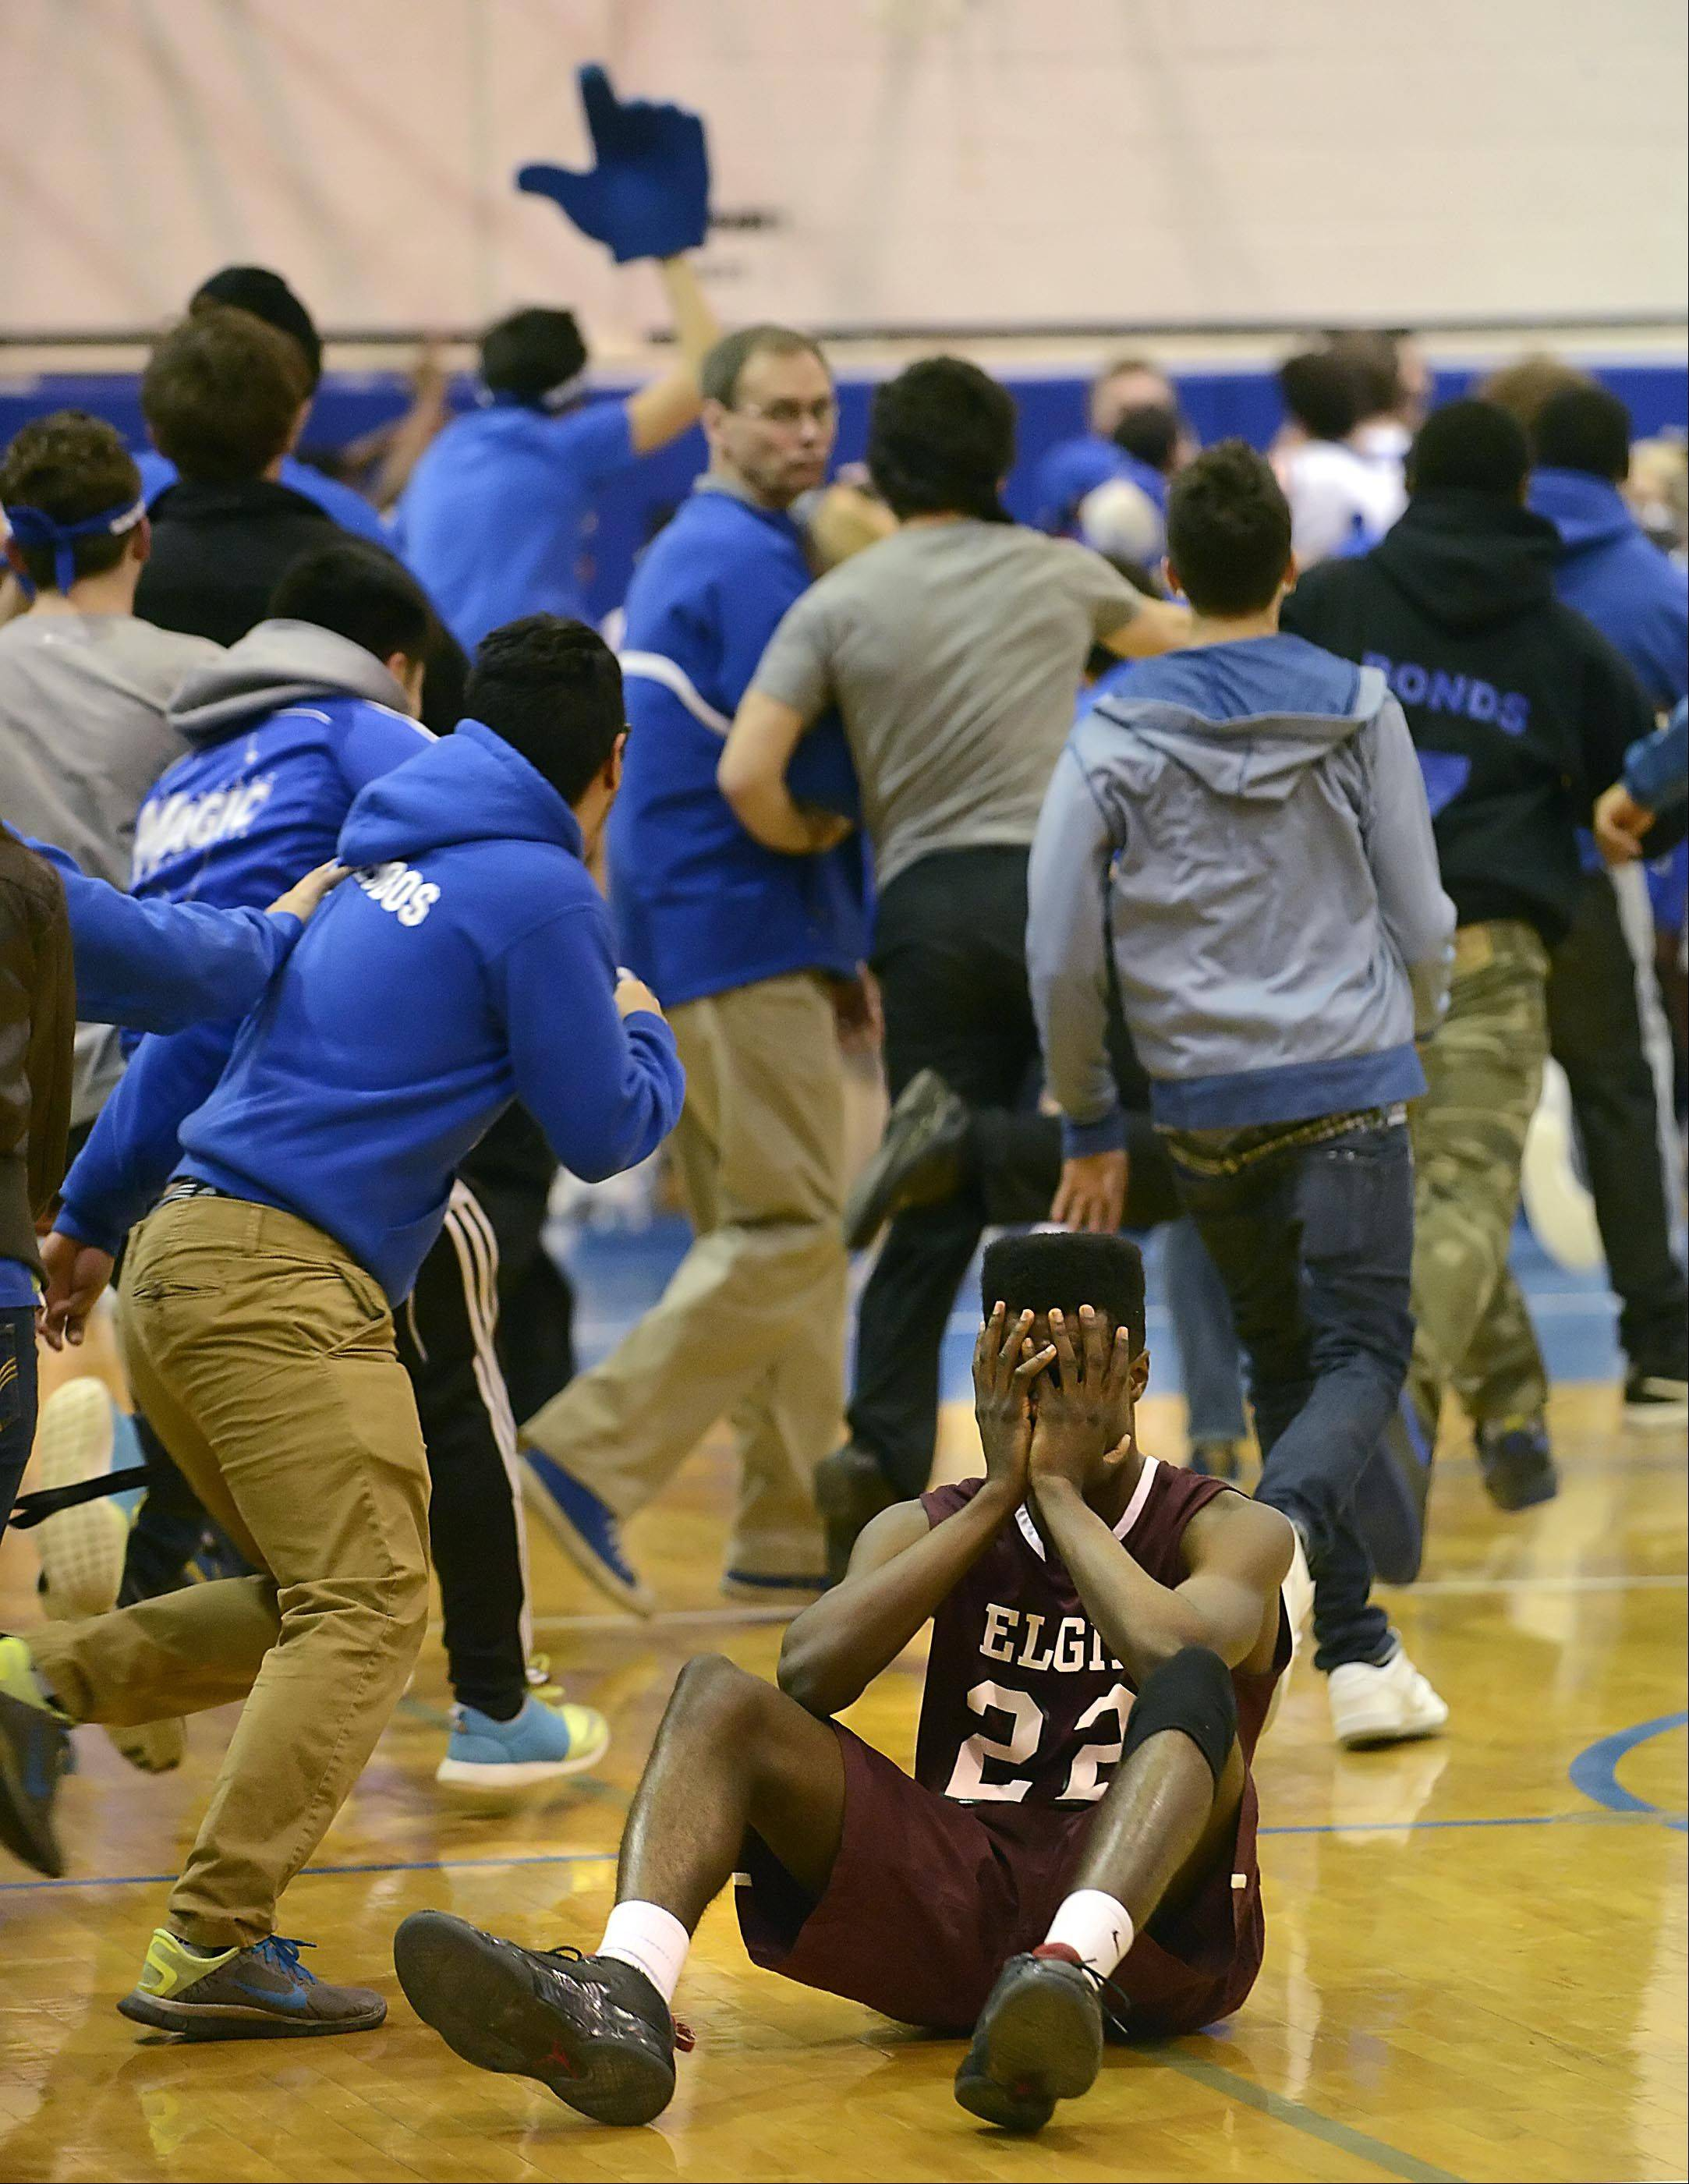 Elgin's Desmond Sanders covers his face while Larkin students rush the floor as the Royals beat the Maroons in the final seconds.